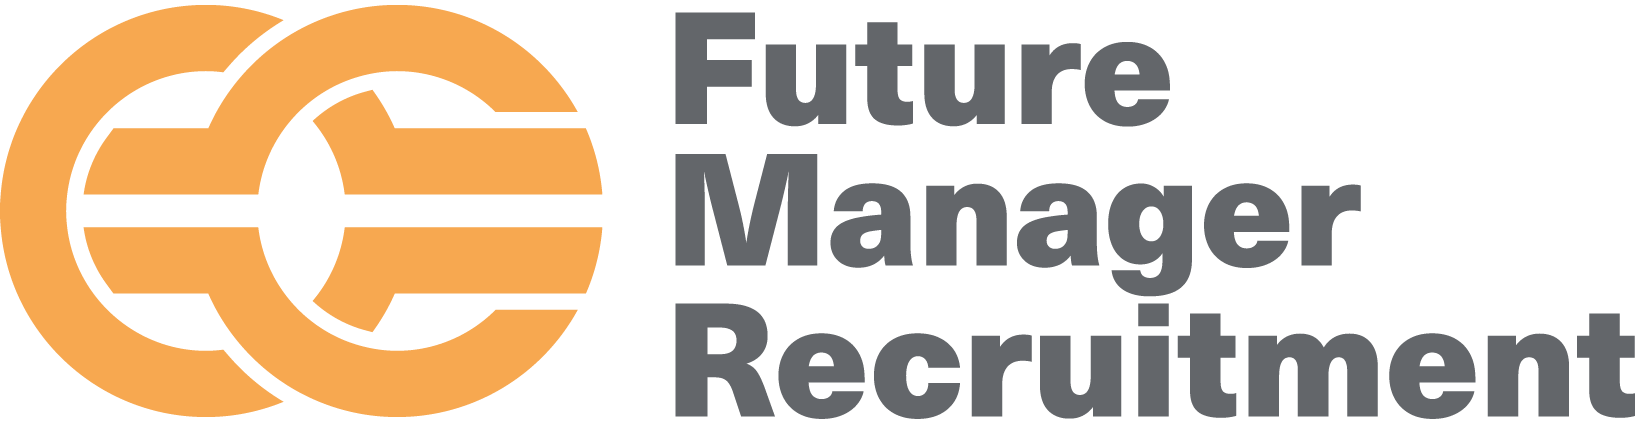 Future Manager Recruitment